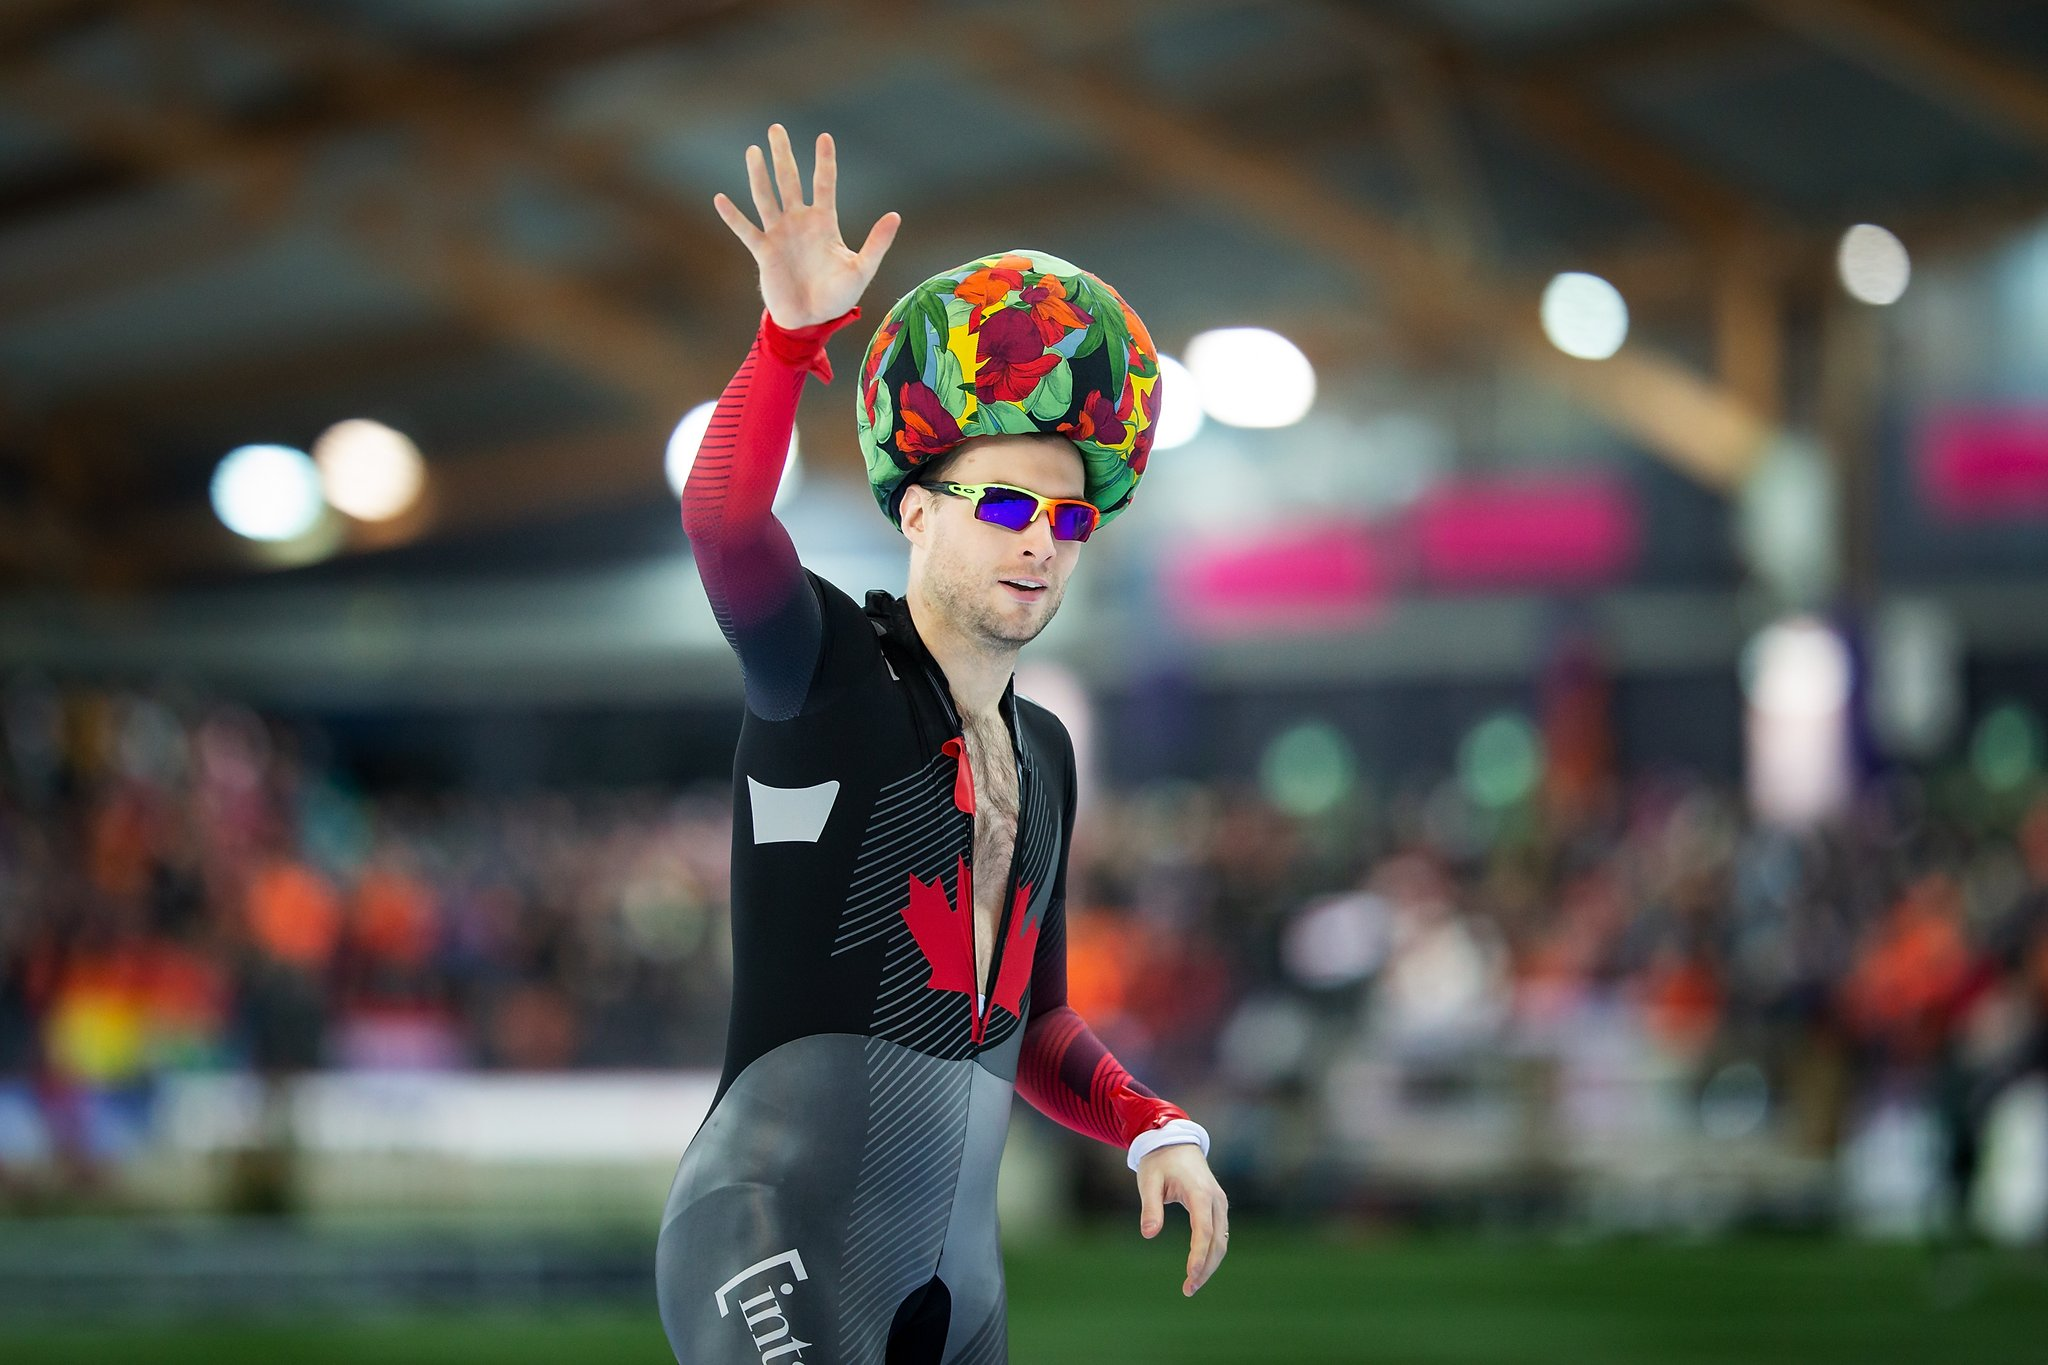 Canada's Laurent Dubreuil celebrates being crowned vice-champion at the ISU World Sprint Speed Skating Championships on Saturday in Hamar, Norway. Feb 29, 2020. (Photo from Speed Skating Twitter)